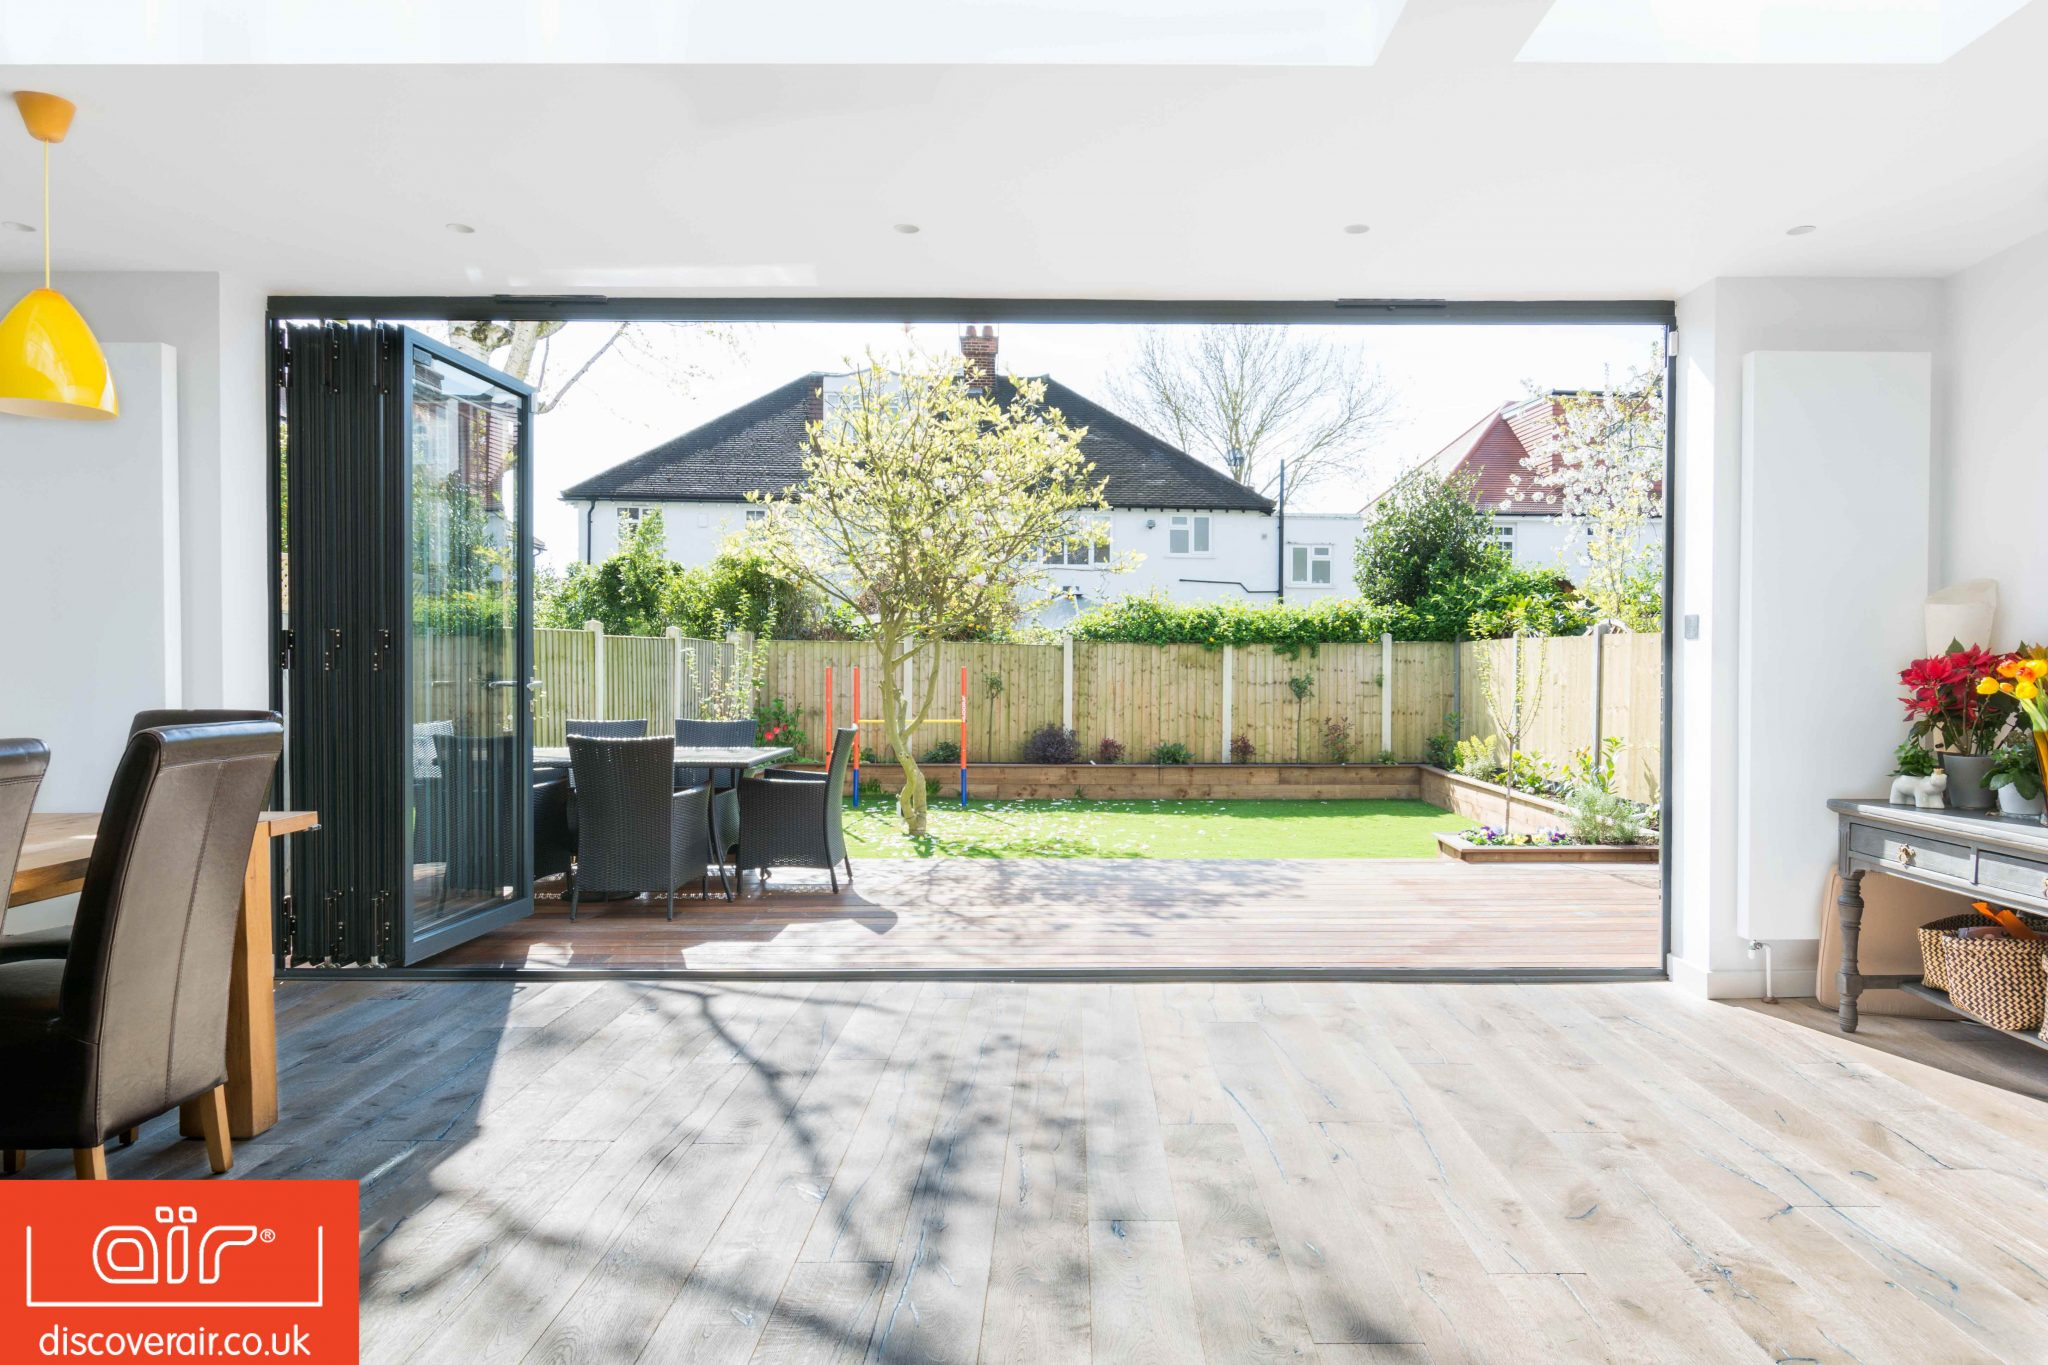 bifold doors from discover air